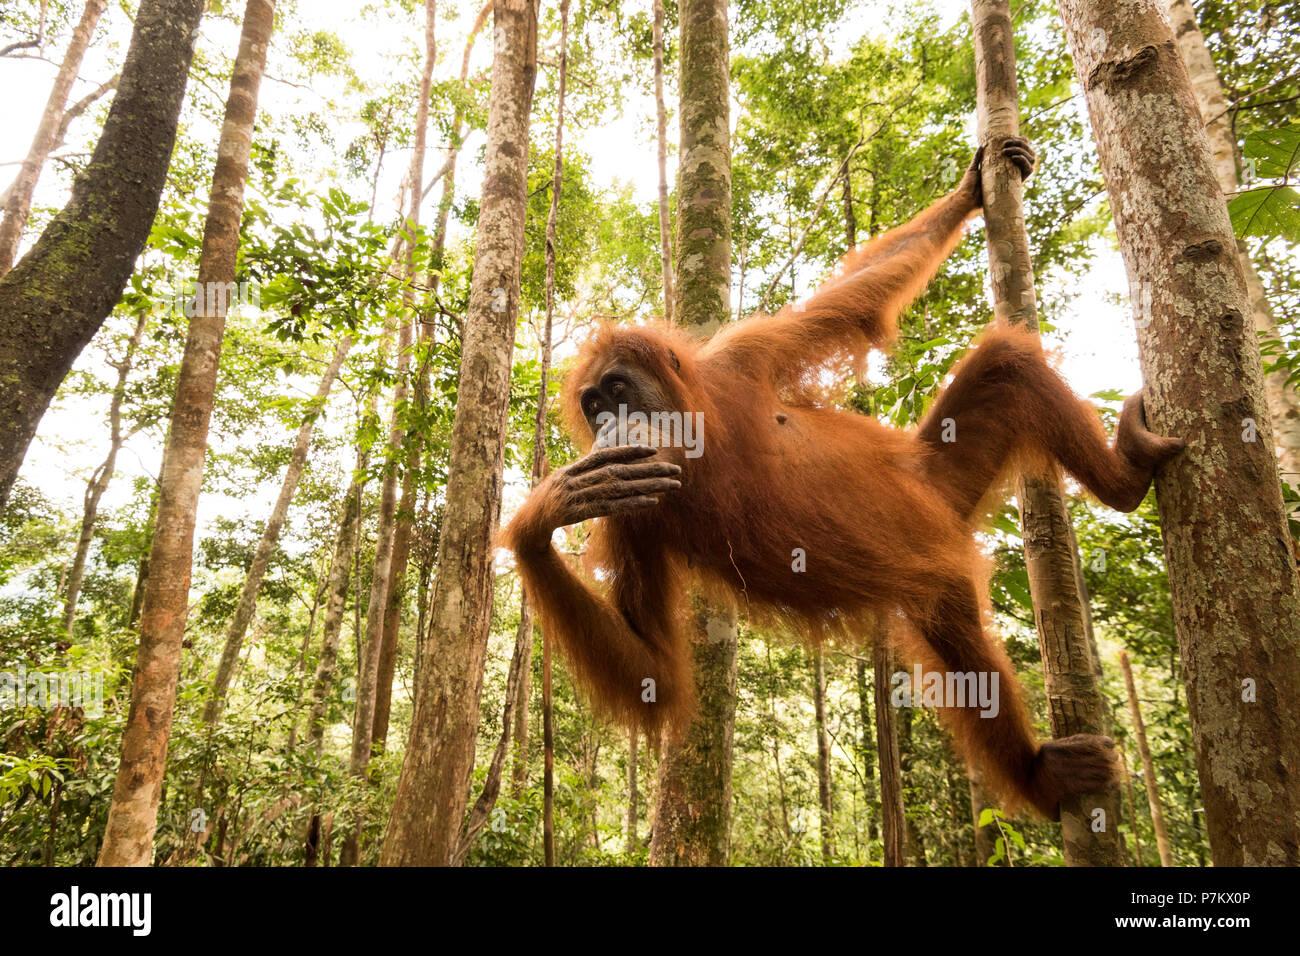 Orangutan in the jungle of Indonesia - Stock Image